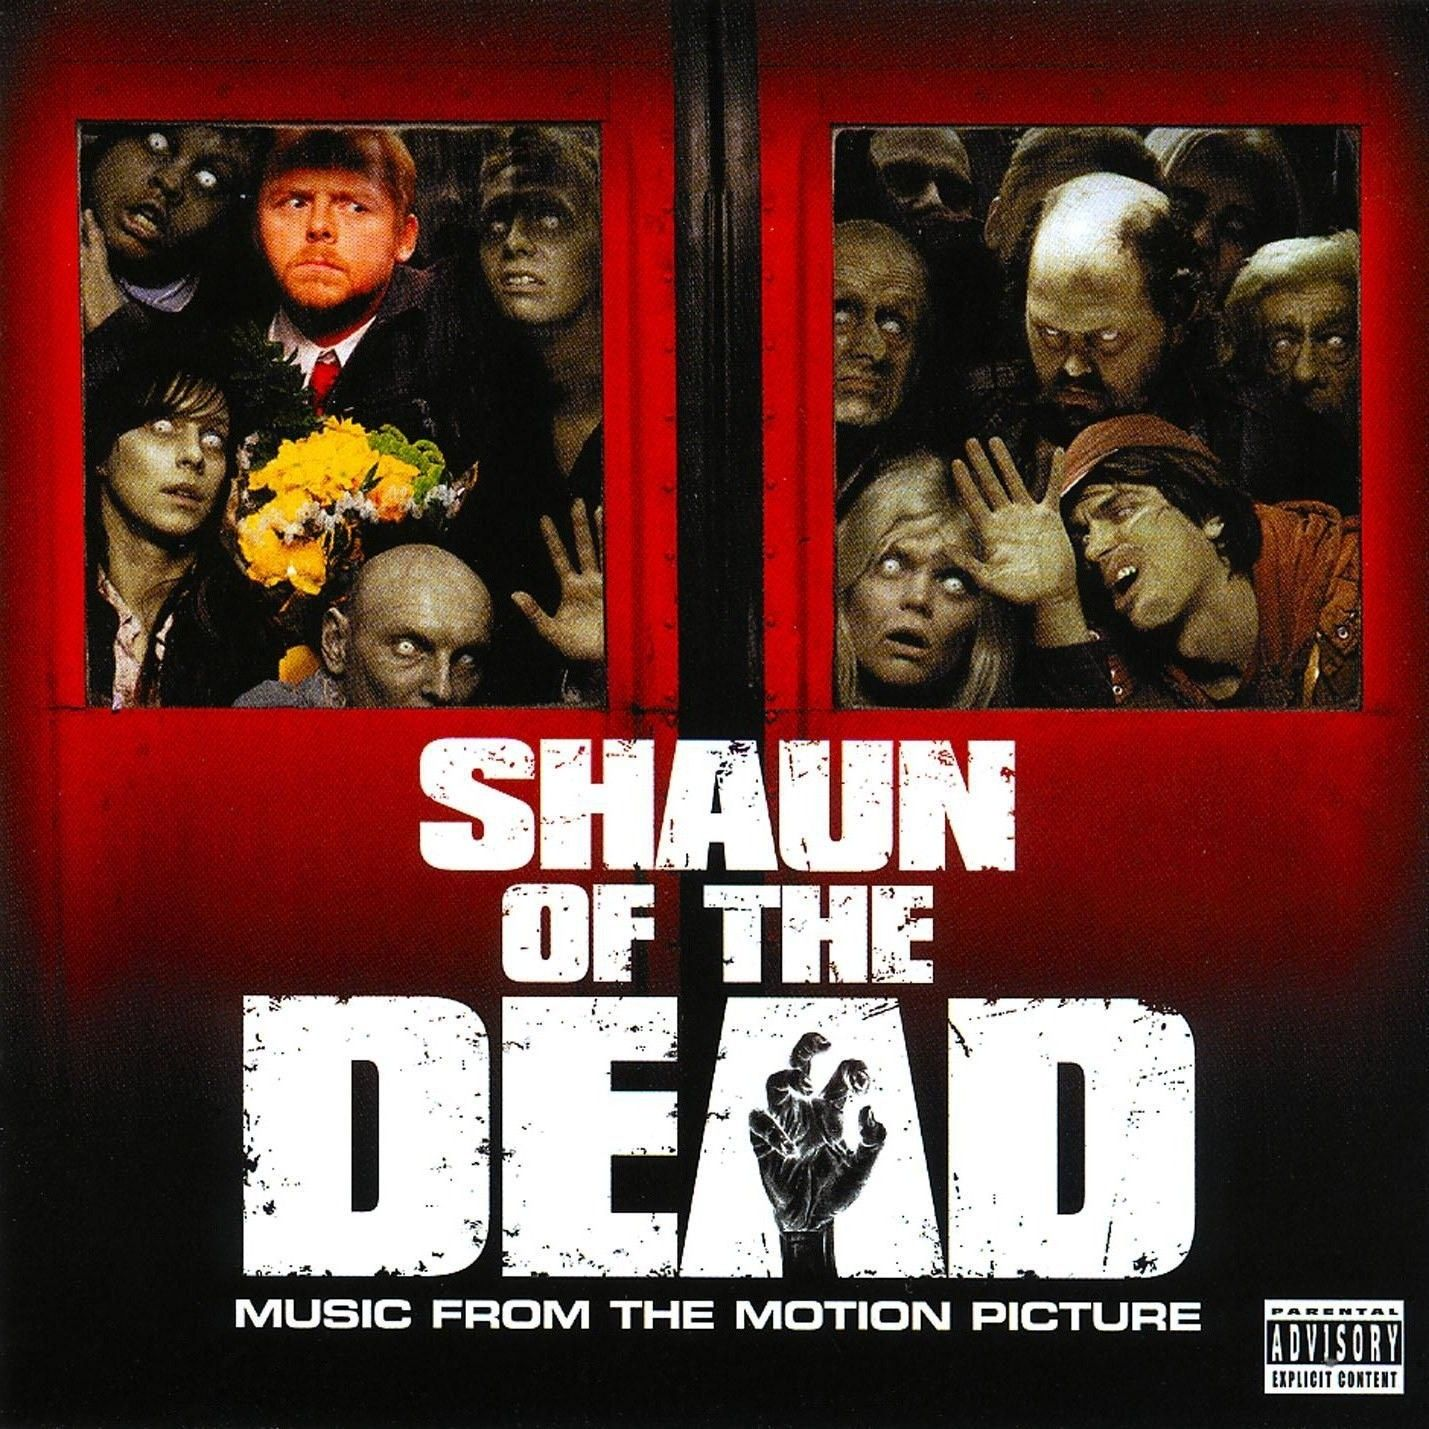 shaun of the dead The 100 Greatest Movie Soundtracks of All Time